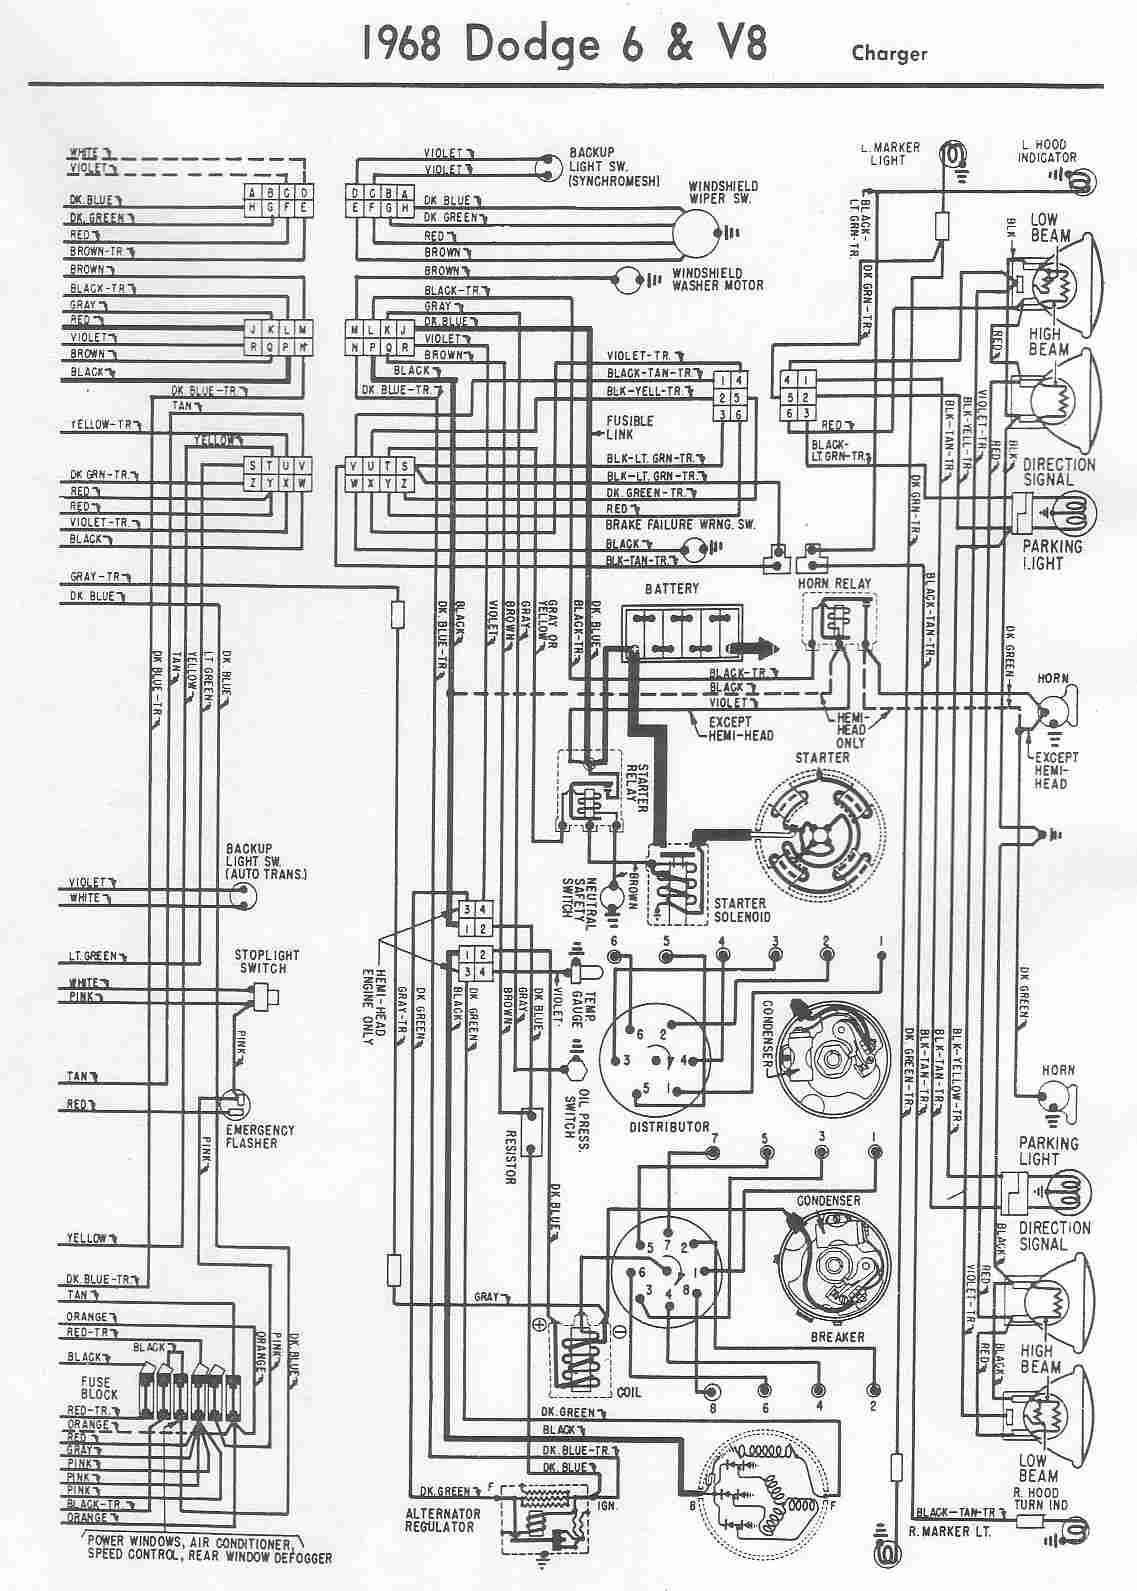 wiring diagrams 1968 plymouth wiring diagrams schematics rh o d l co Plymouth Diagram 1968 Underhood Wiring 1968 Dodge Coronet Wiring-Diagram